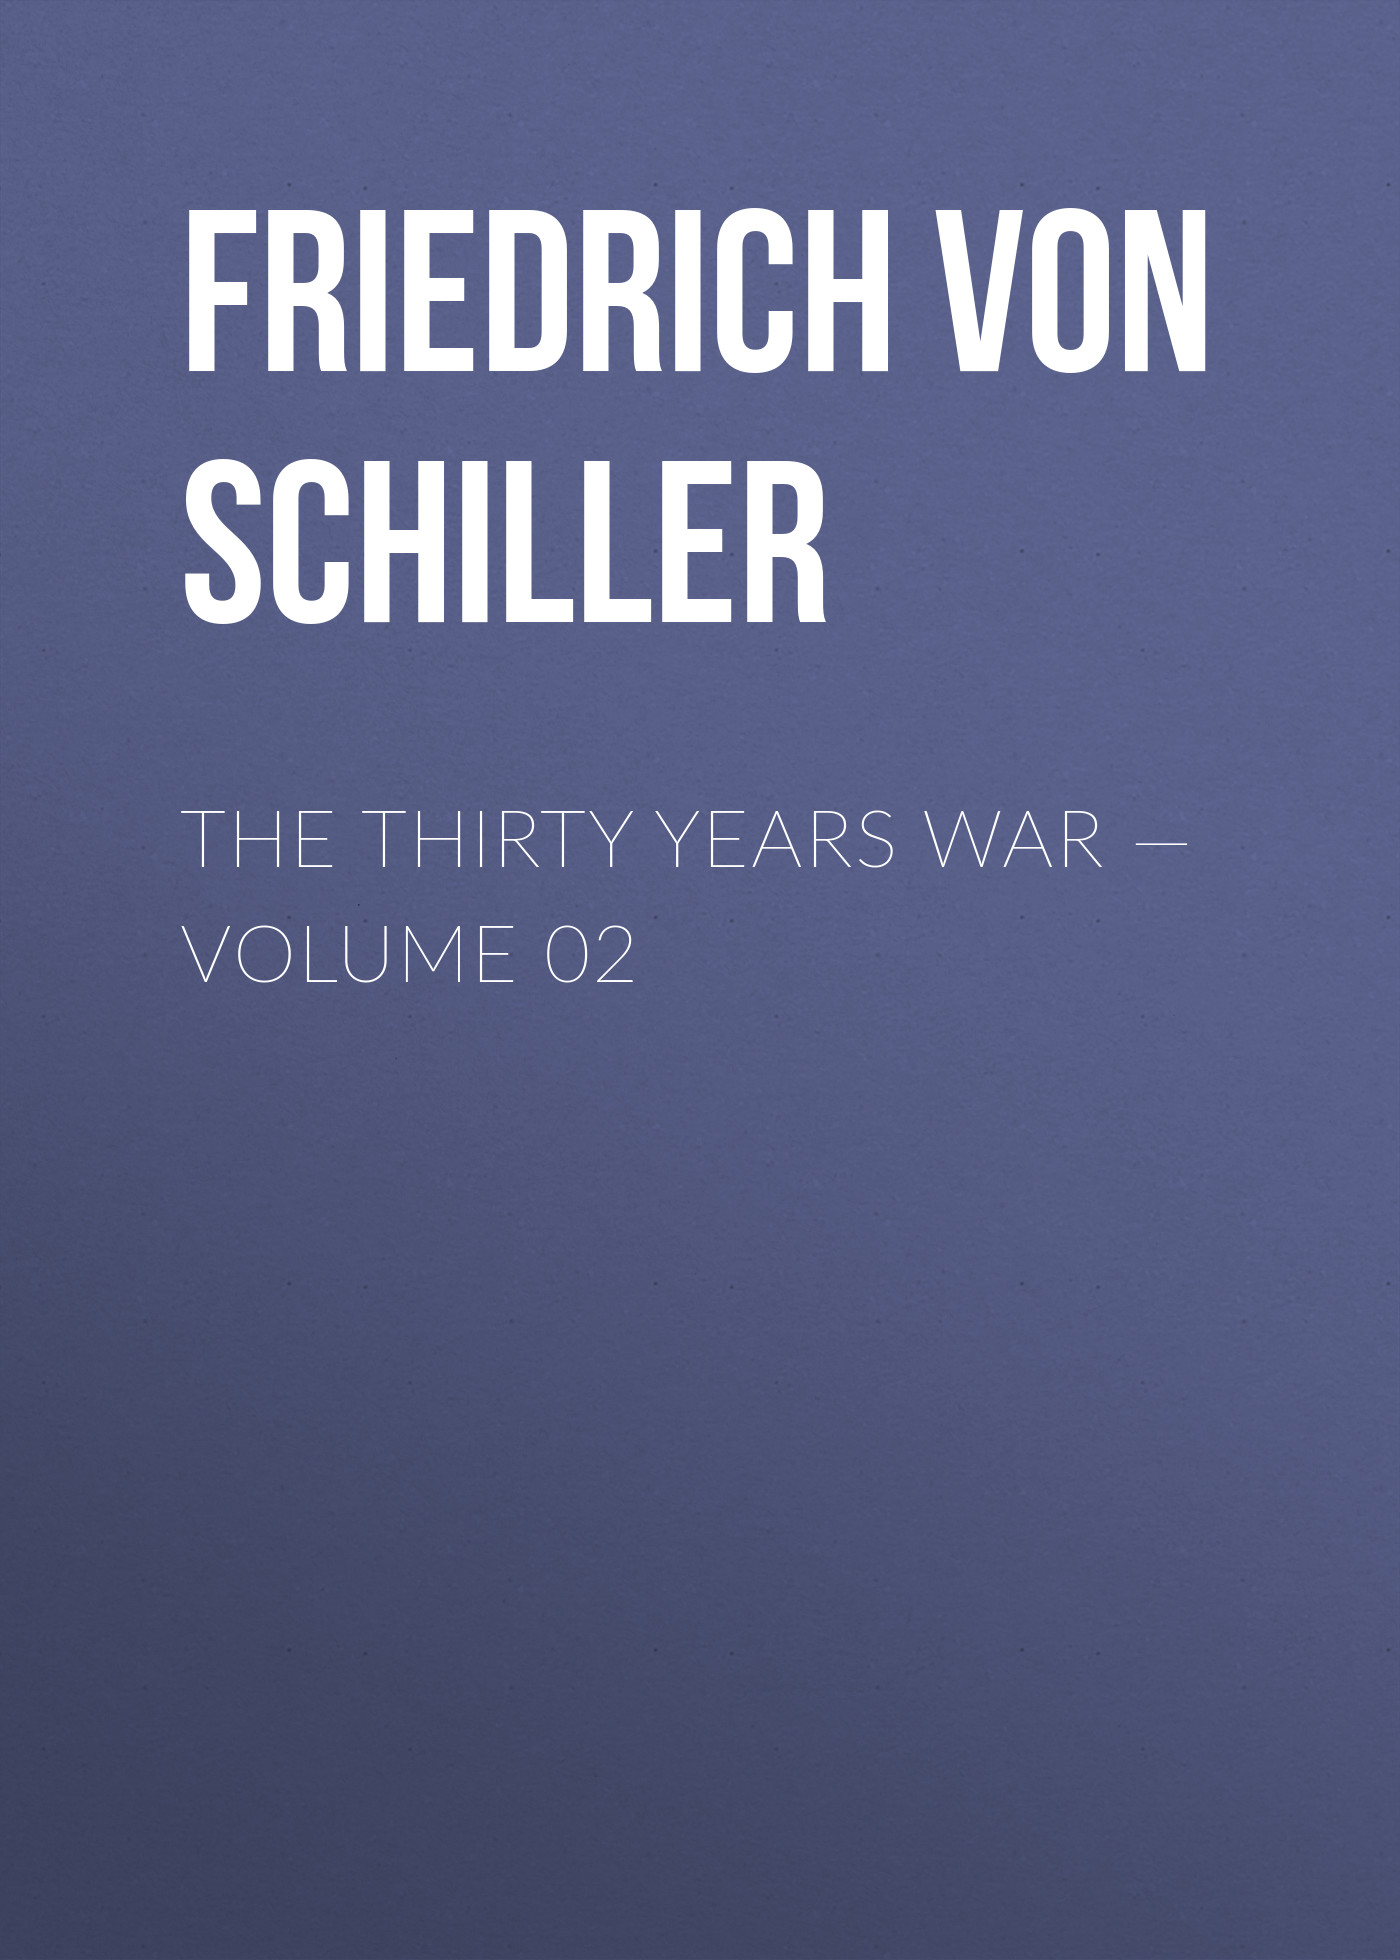 лучшая цена Friedrich von Schiller The Thirty Years War — Volume 02